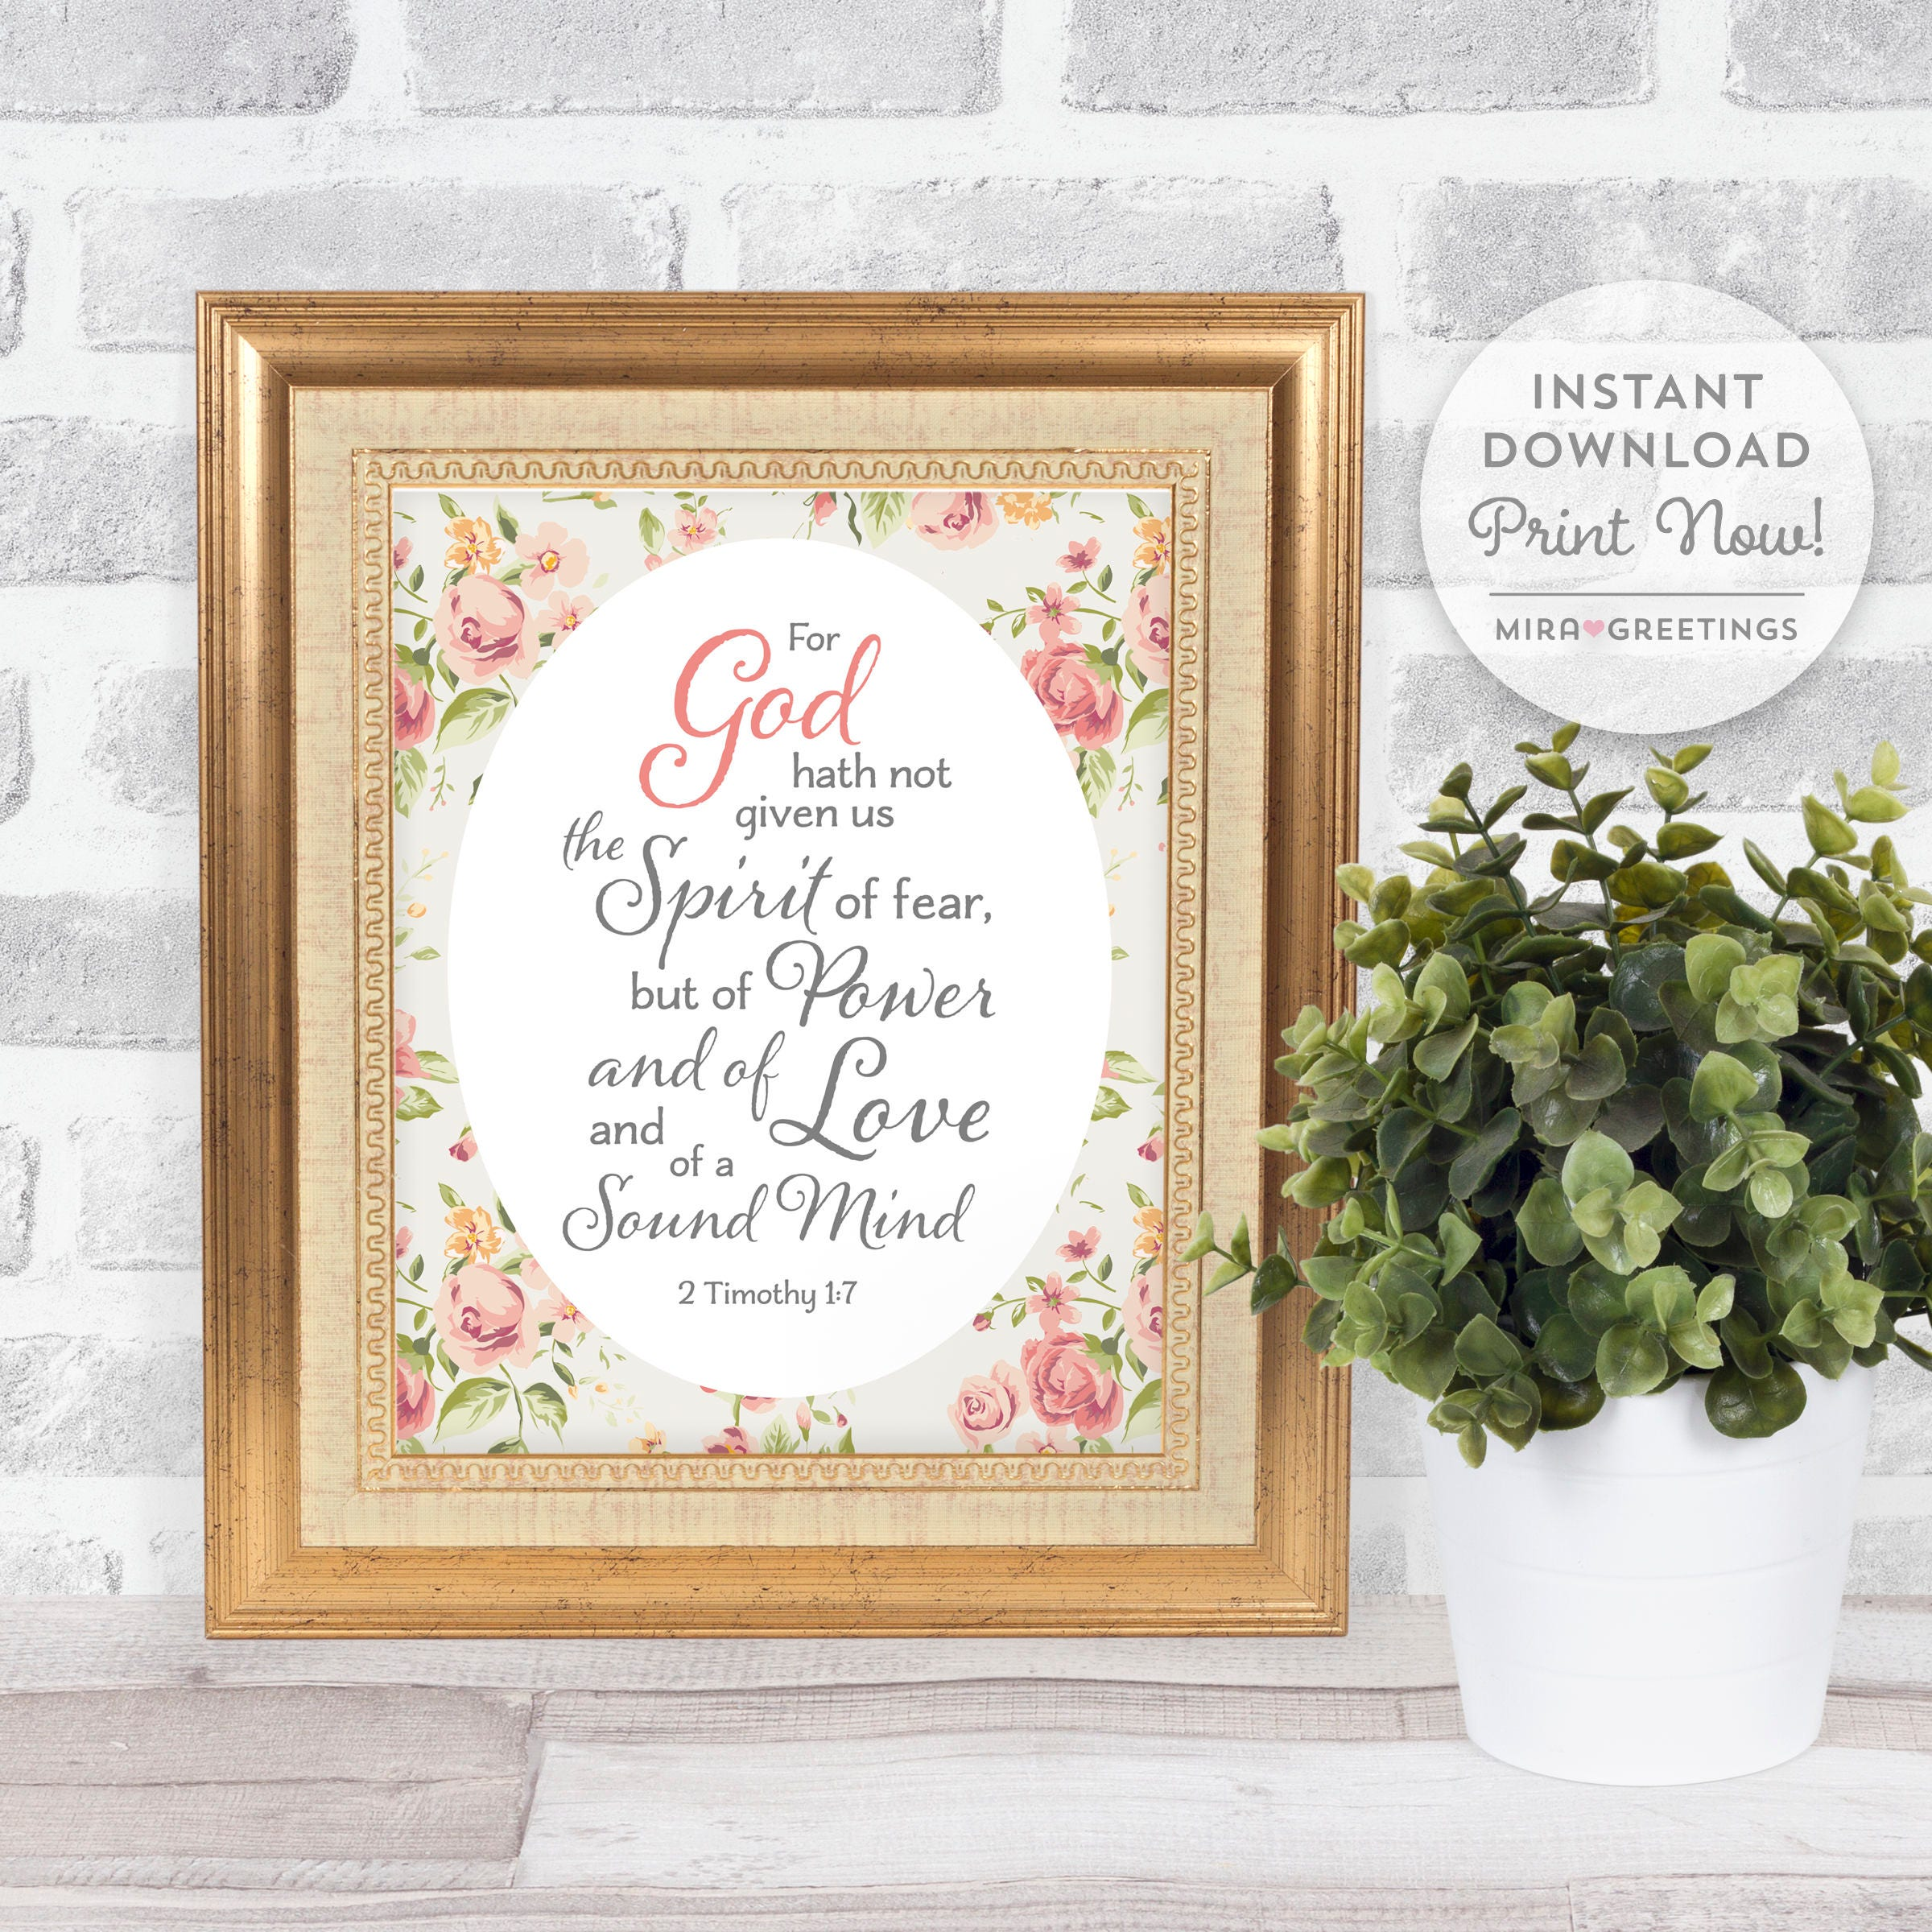 Bible verse digital download 2 timothy 17 quote for god hath bible verse digital download 2 timothy 17 quote for god hath not given us bible quote art digital printable file instant download m4hsunfo